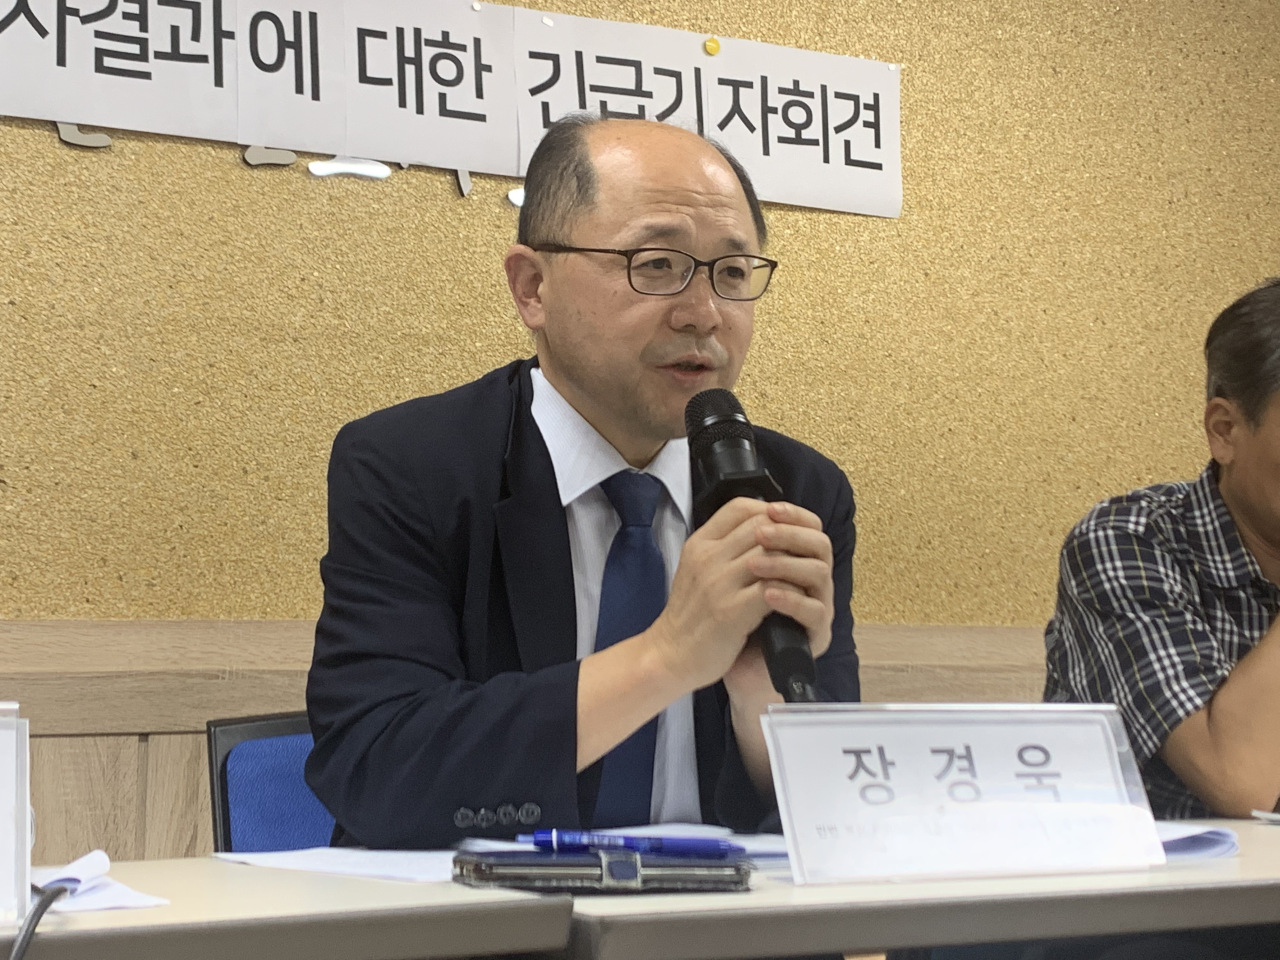 Jang Kyung-wook, a lawyer leading Minbyun's response to a case involving North Korean waitresses, speaks during a press conference Tuesday. (Kim Arin/The Korea Herald)